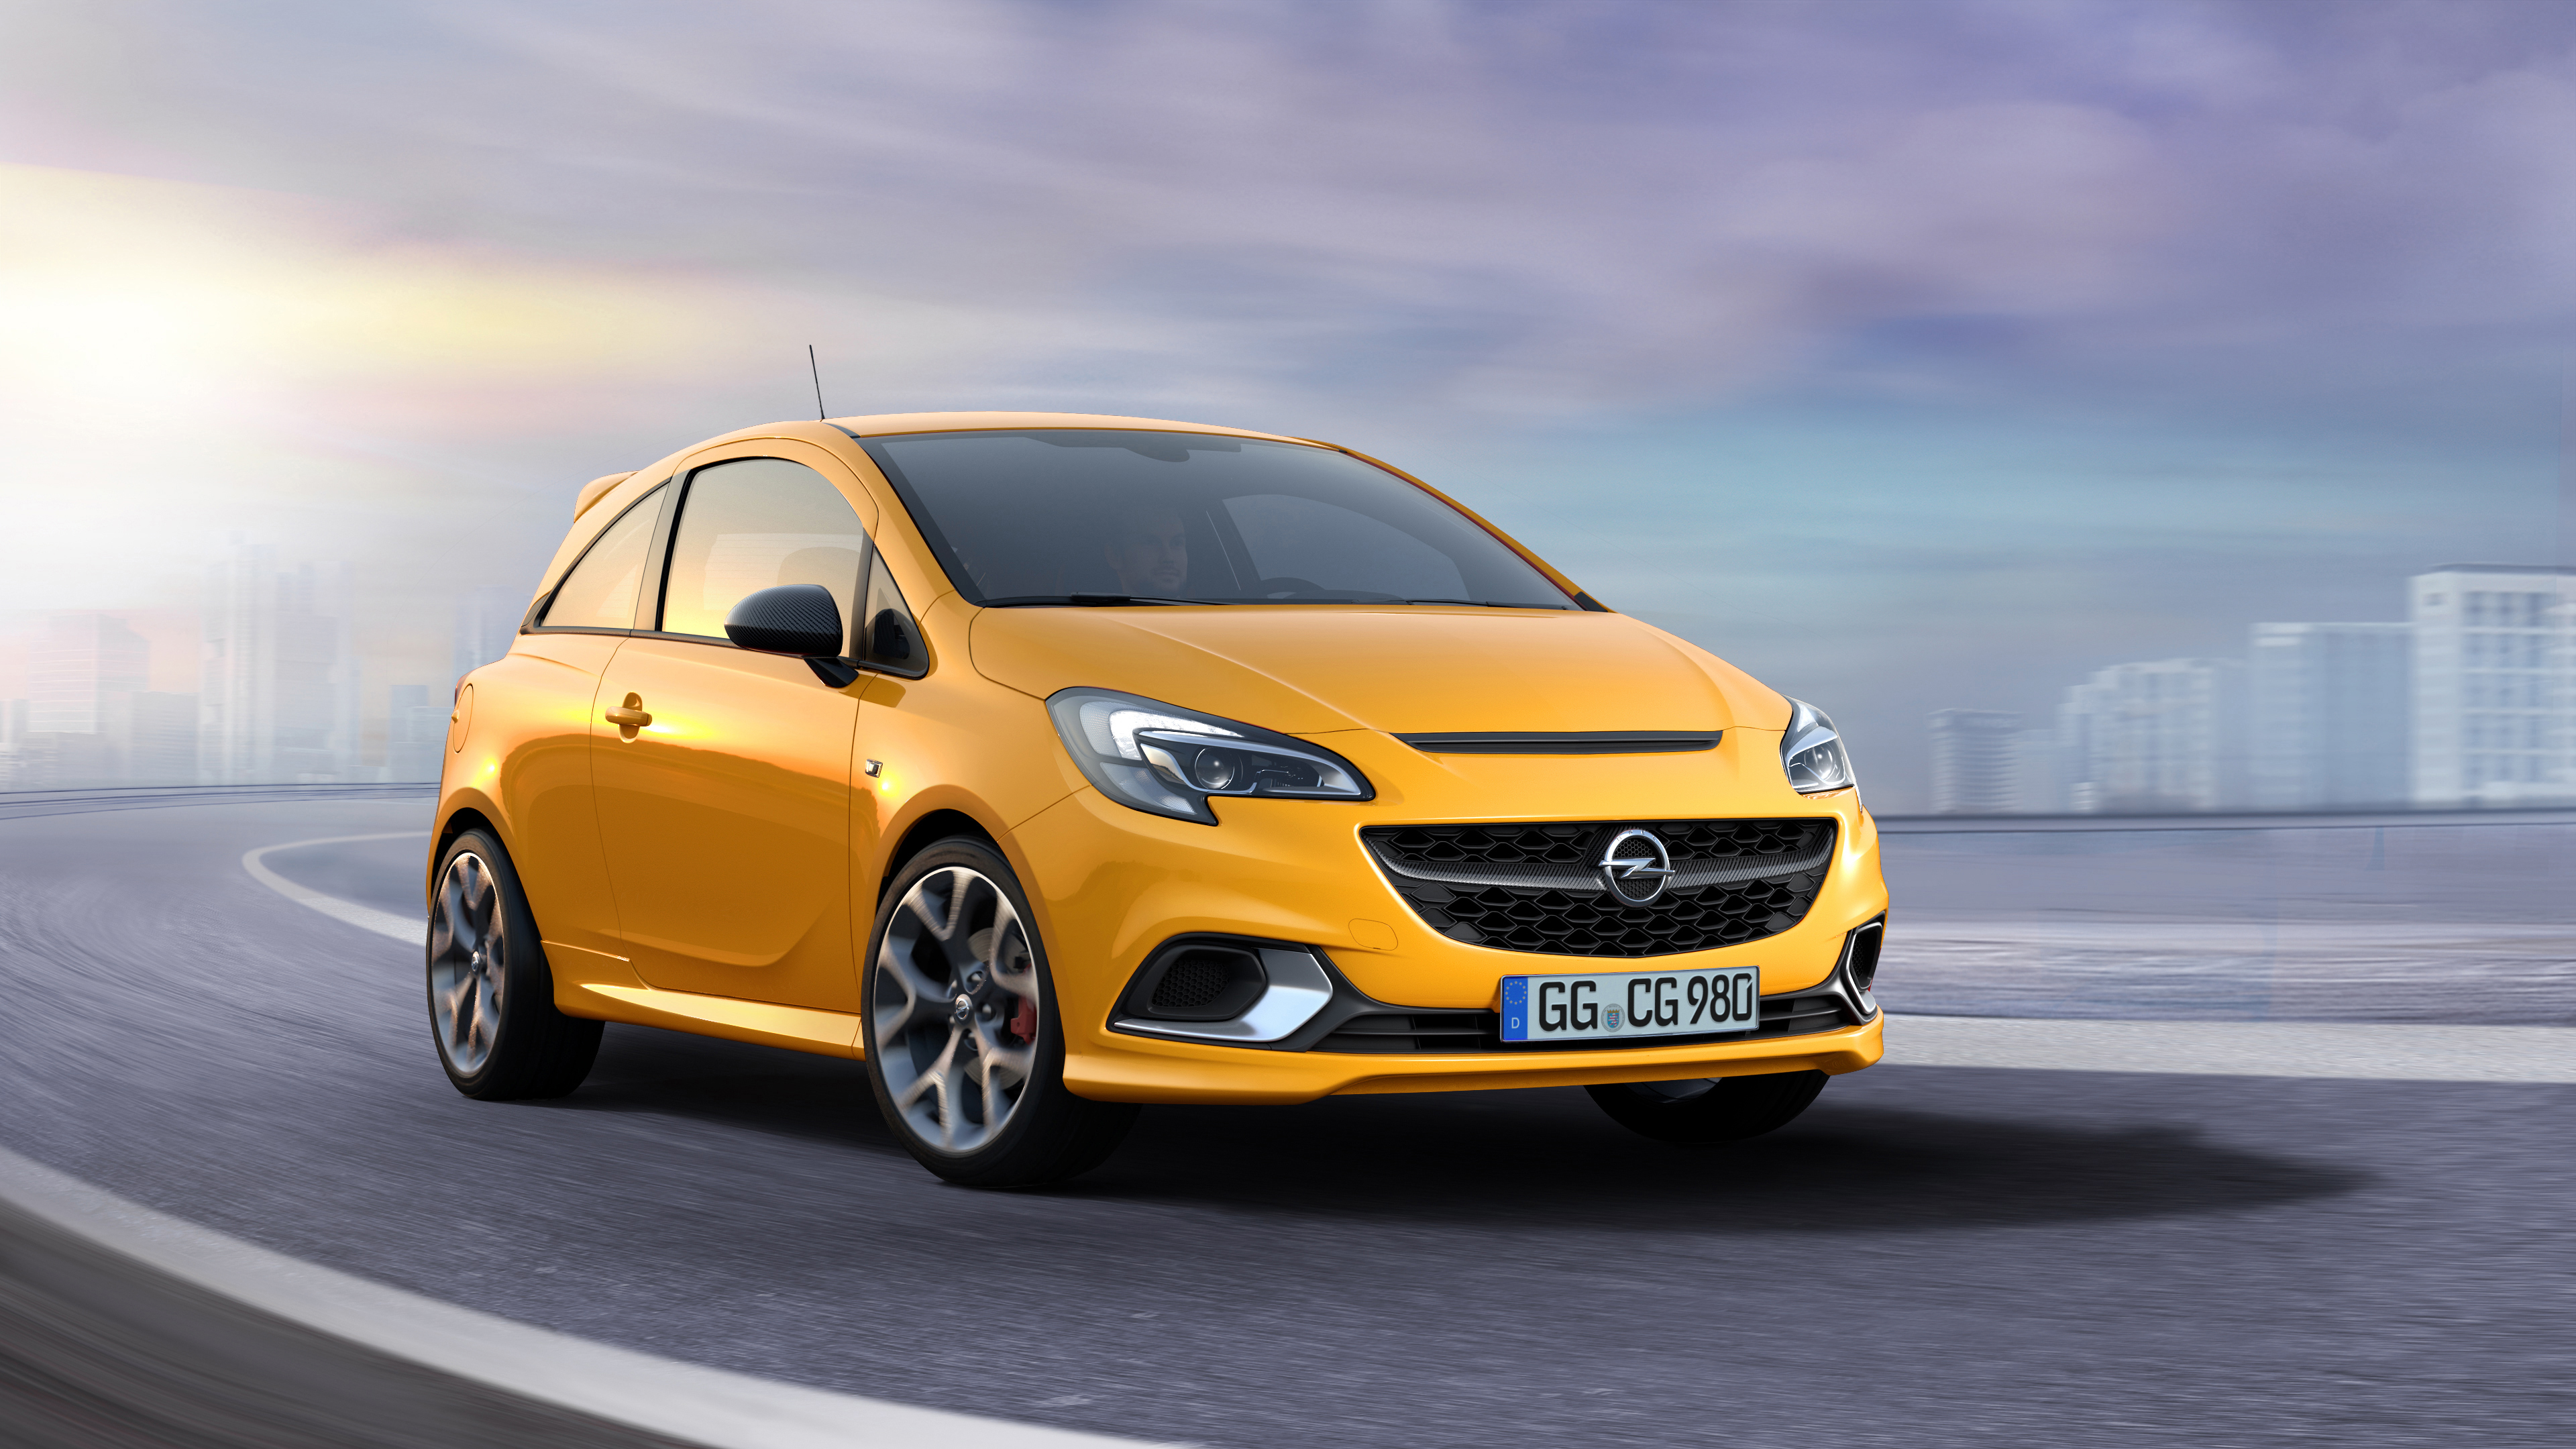 What you see is what you get: The sporty design of the Opel Corsa GSi reflects its fun-to-drive character.